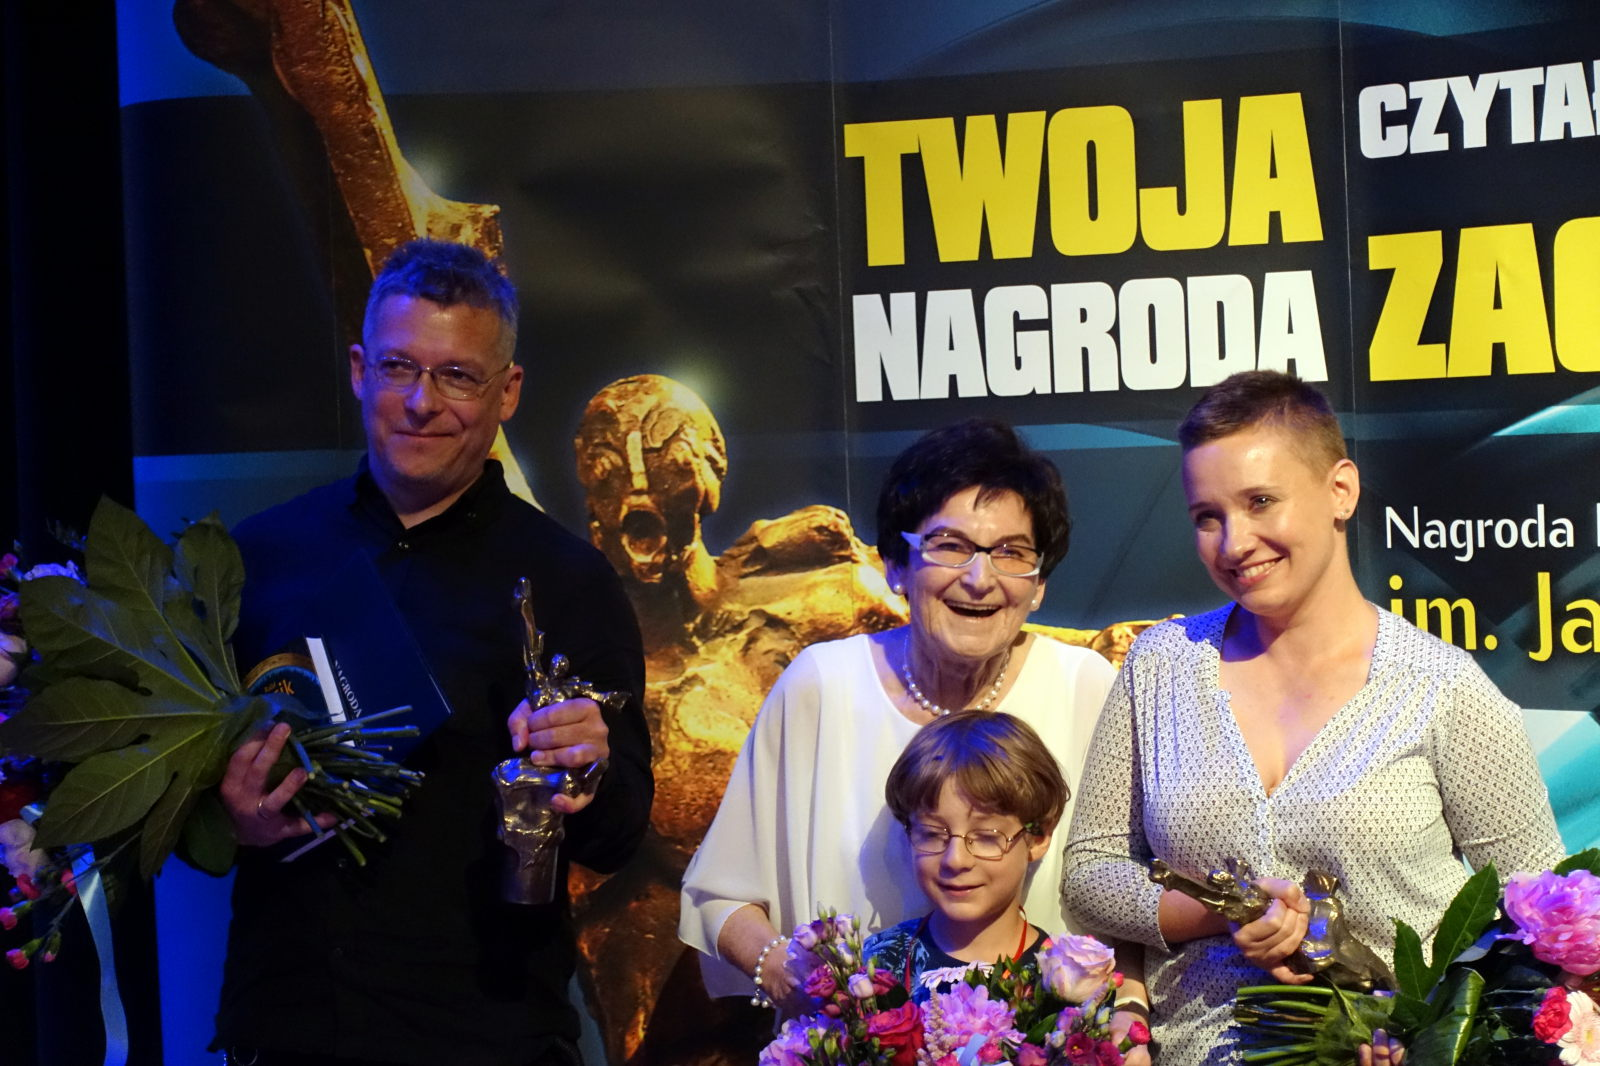 Three adults and a child posing in front of the big Janusz A. Zajdel Award poster.